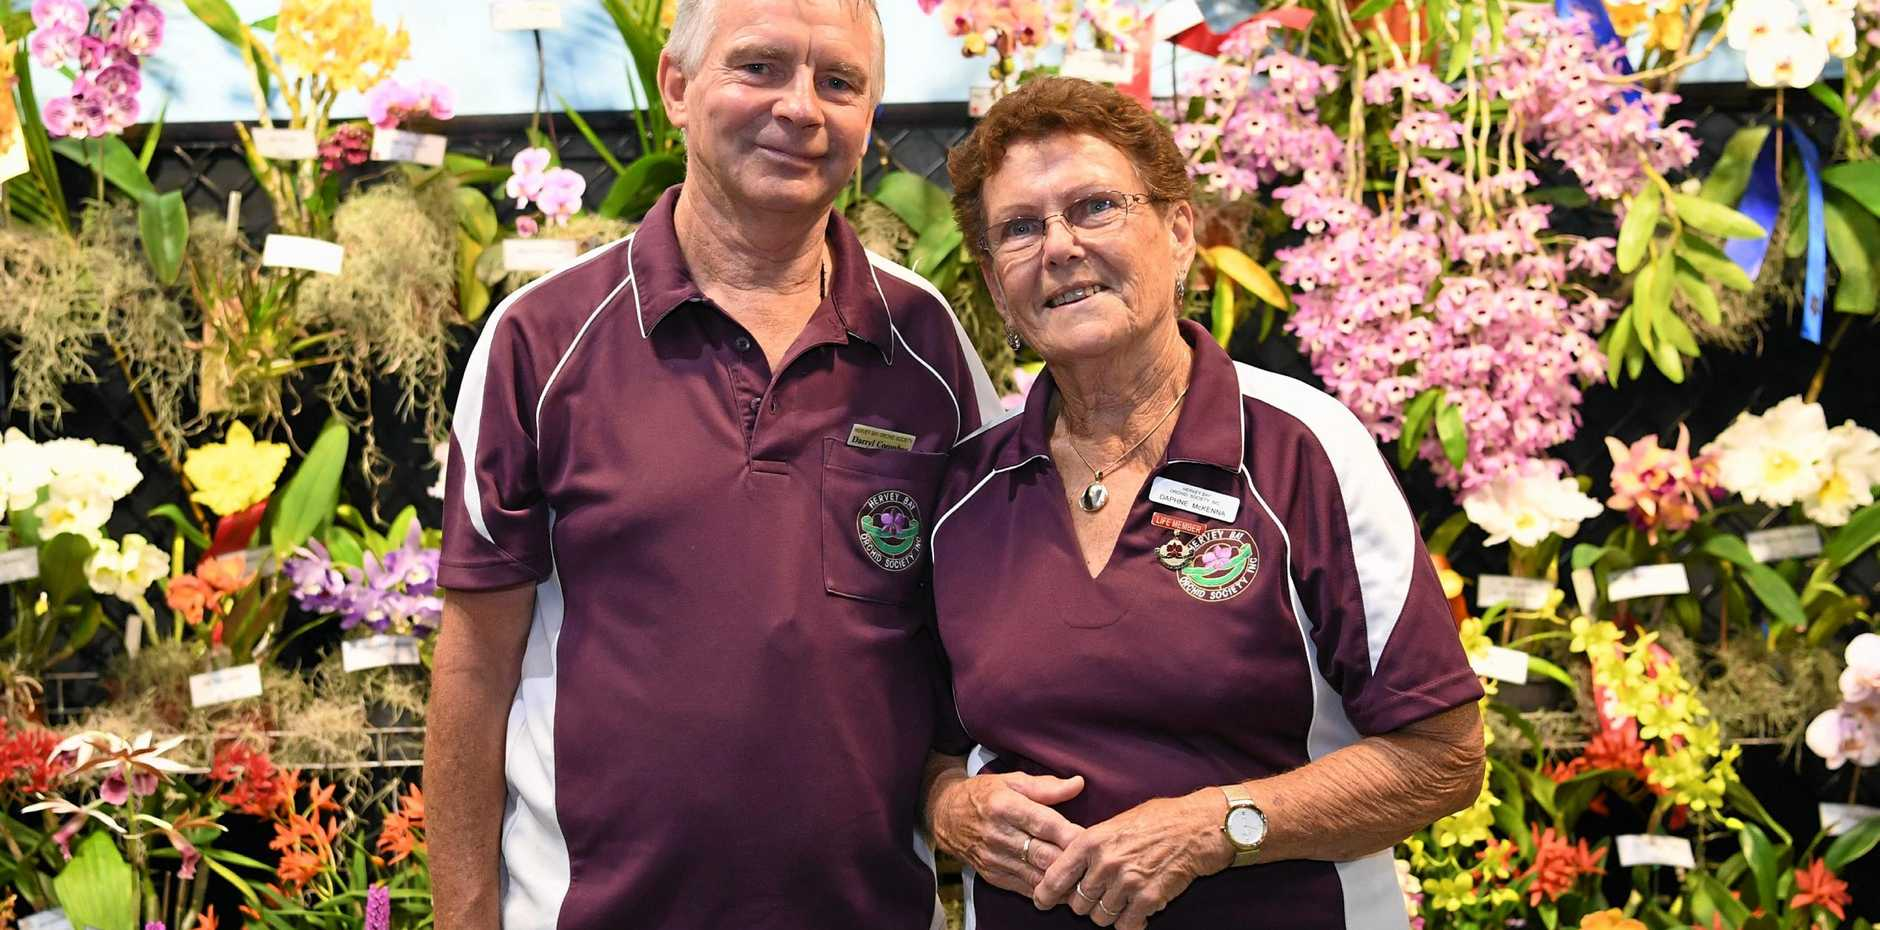 FUN AND FLOWERS: Darryl Coombes and Daphne McKenna from the Hervey Bay Orchid Society at the event on the weekend.